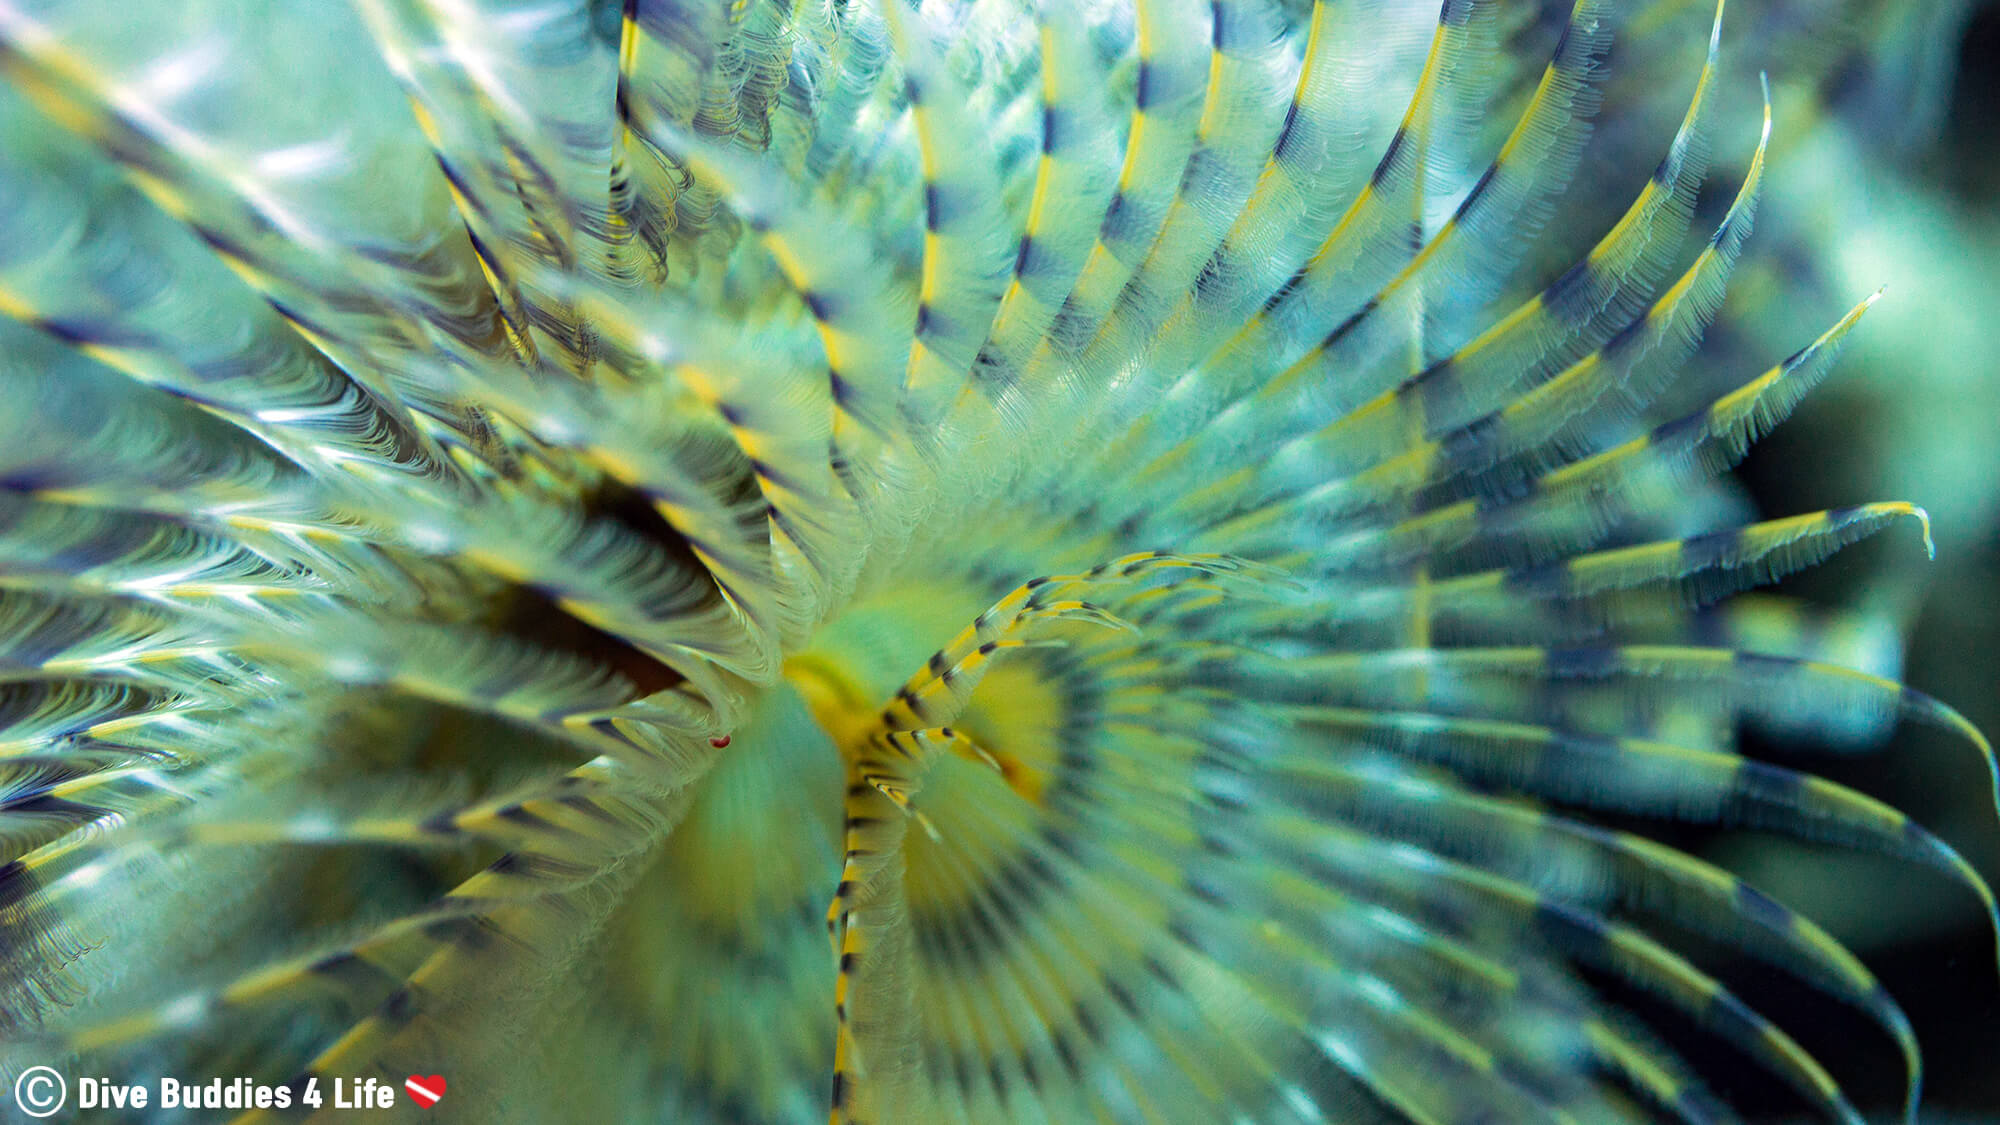 A Macro Shot Of A Tube Worm In Dubrovnik, Croatia, One Of Europe's Balkan Countries